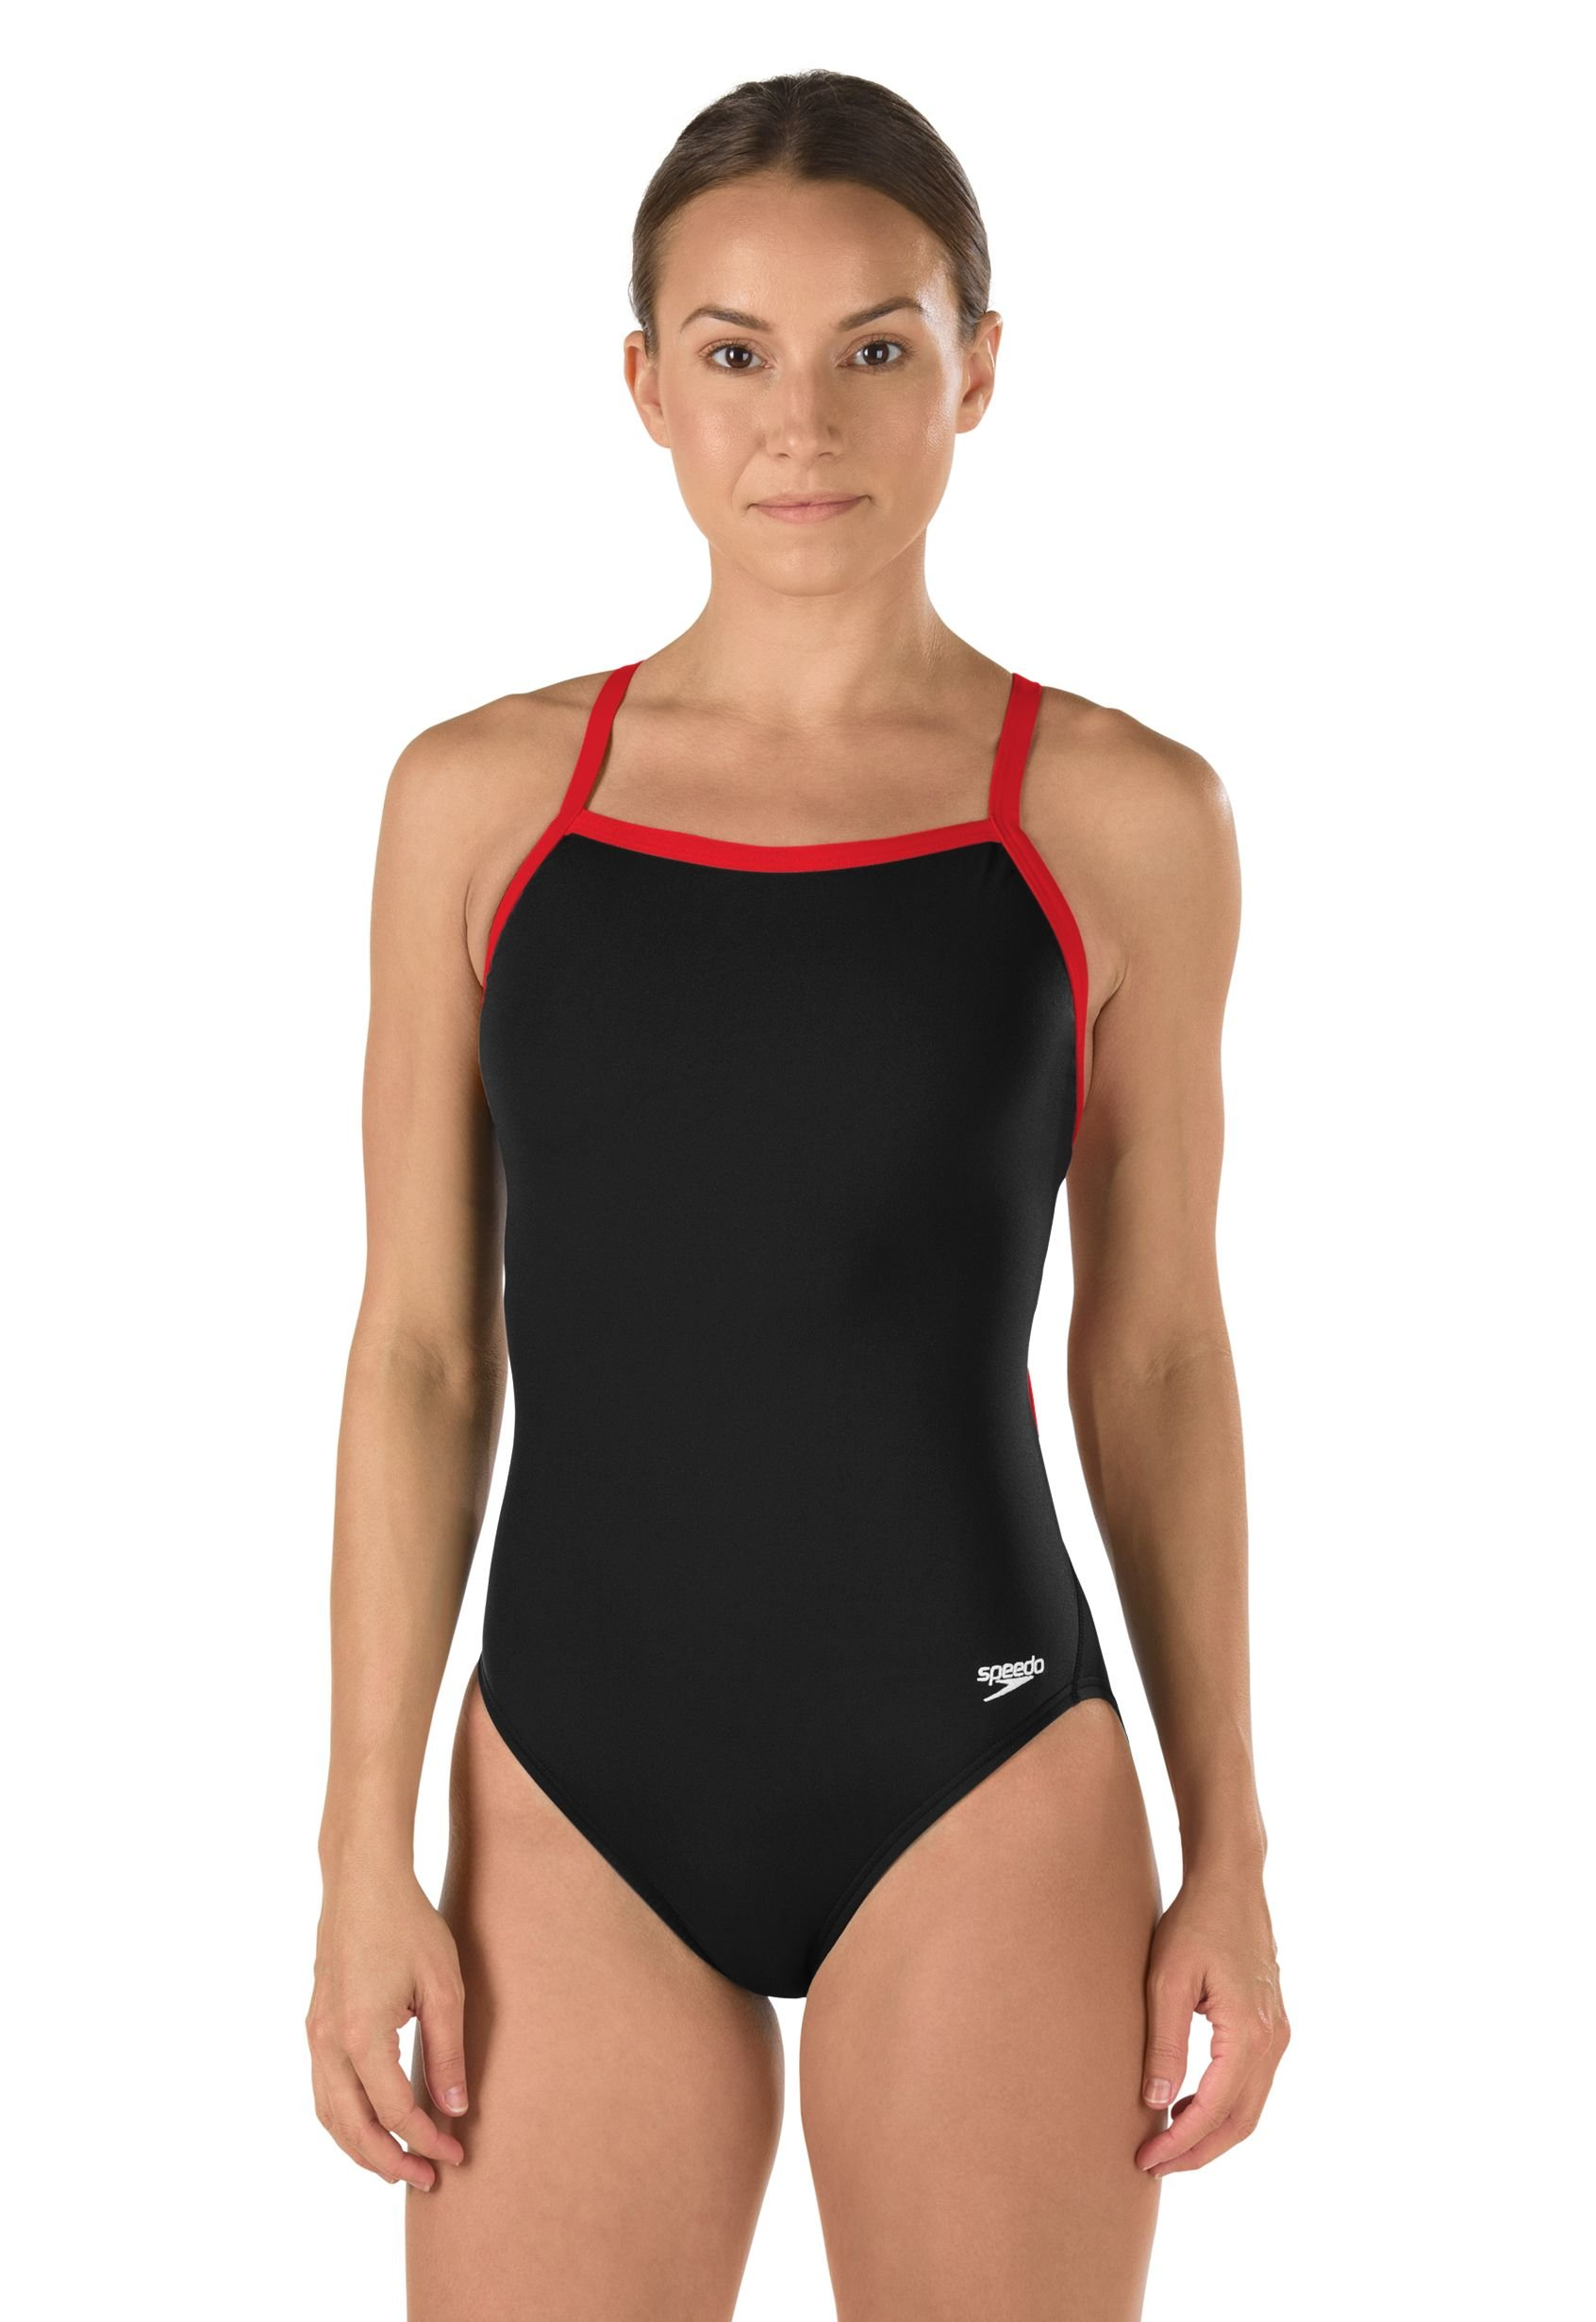 Speedo Women's Race Endurance+ Polyester Flyback Training One Piece Swimsuit, Black and Red, 38(Youth)